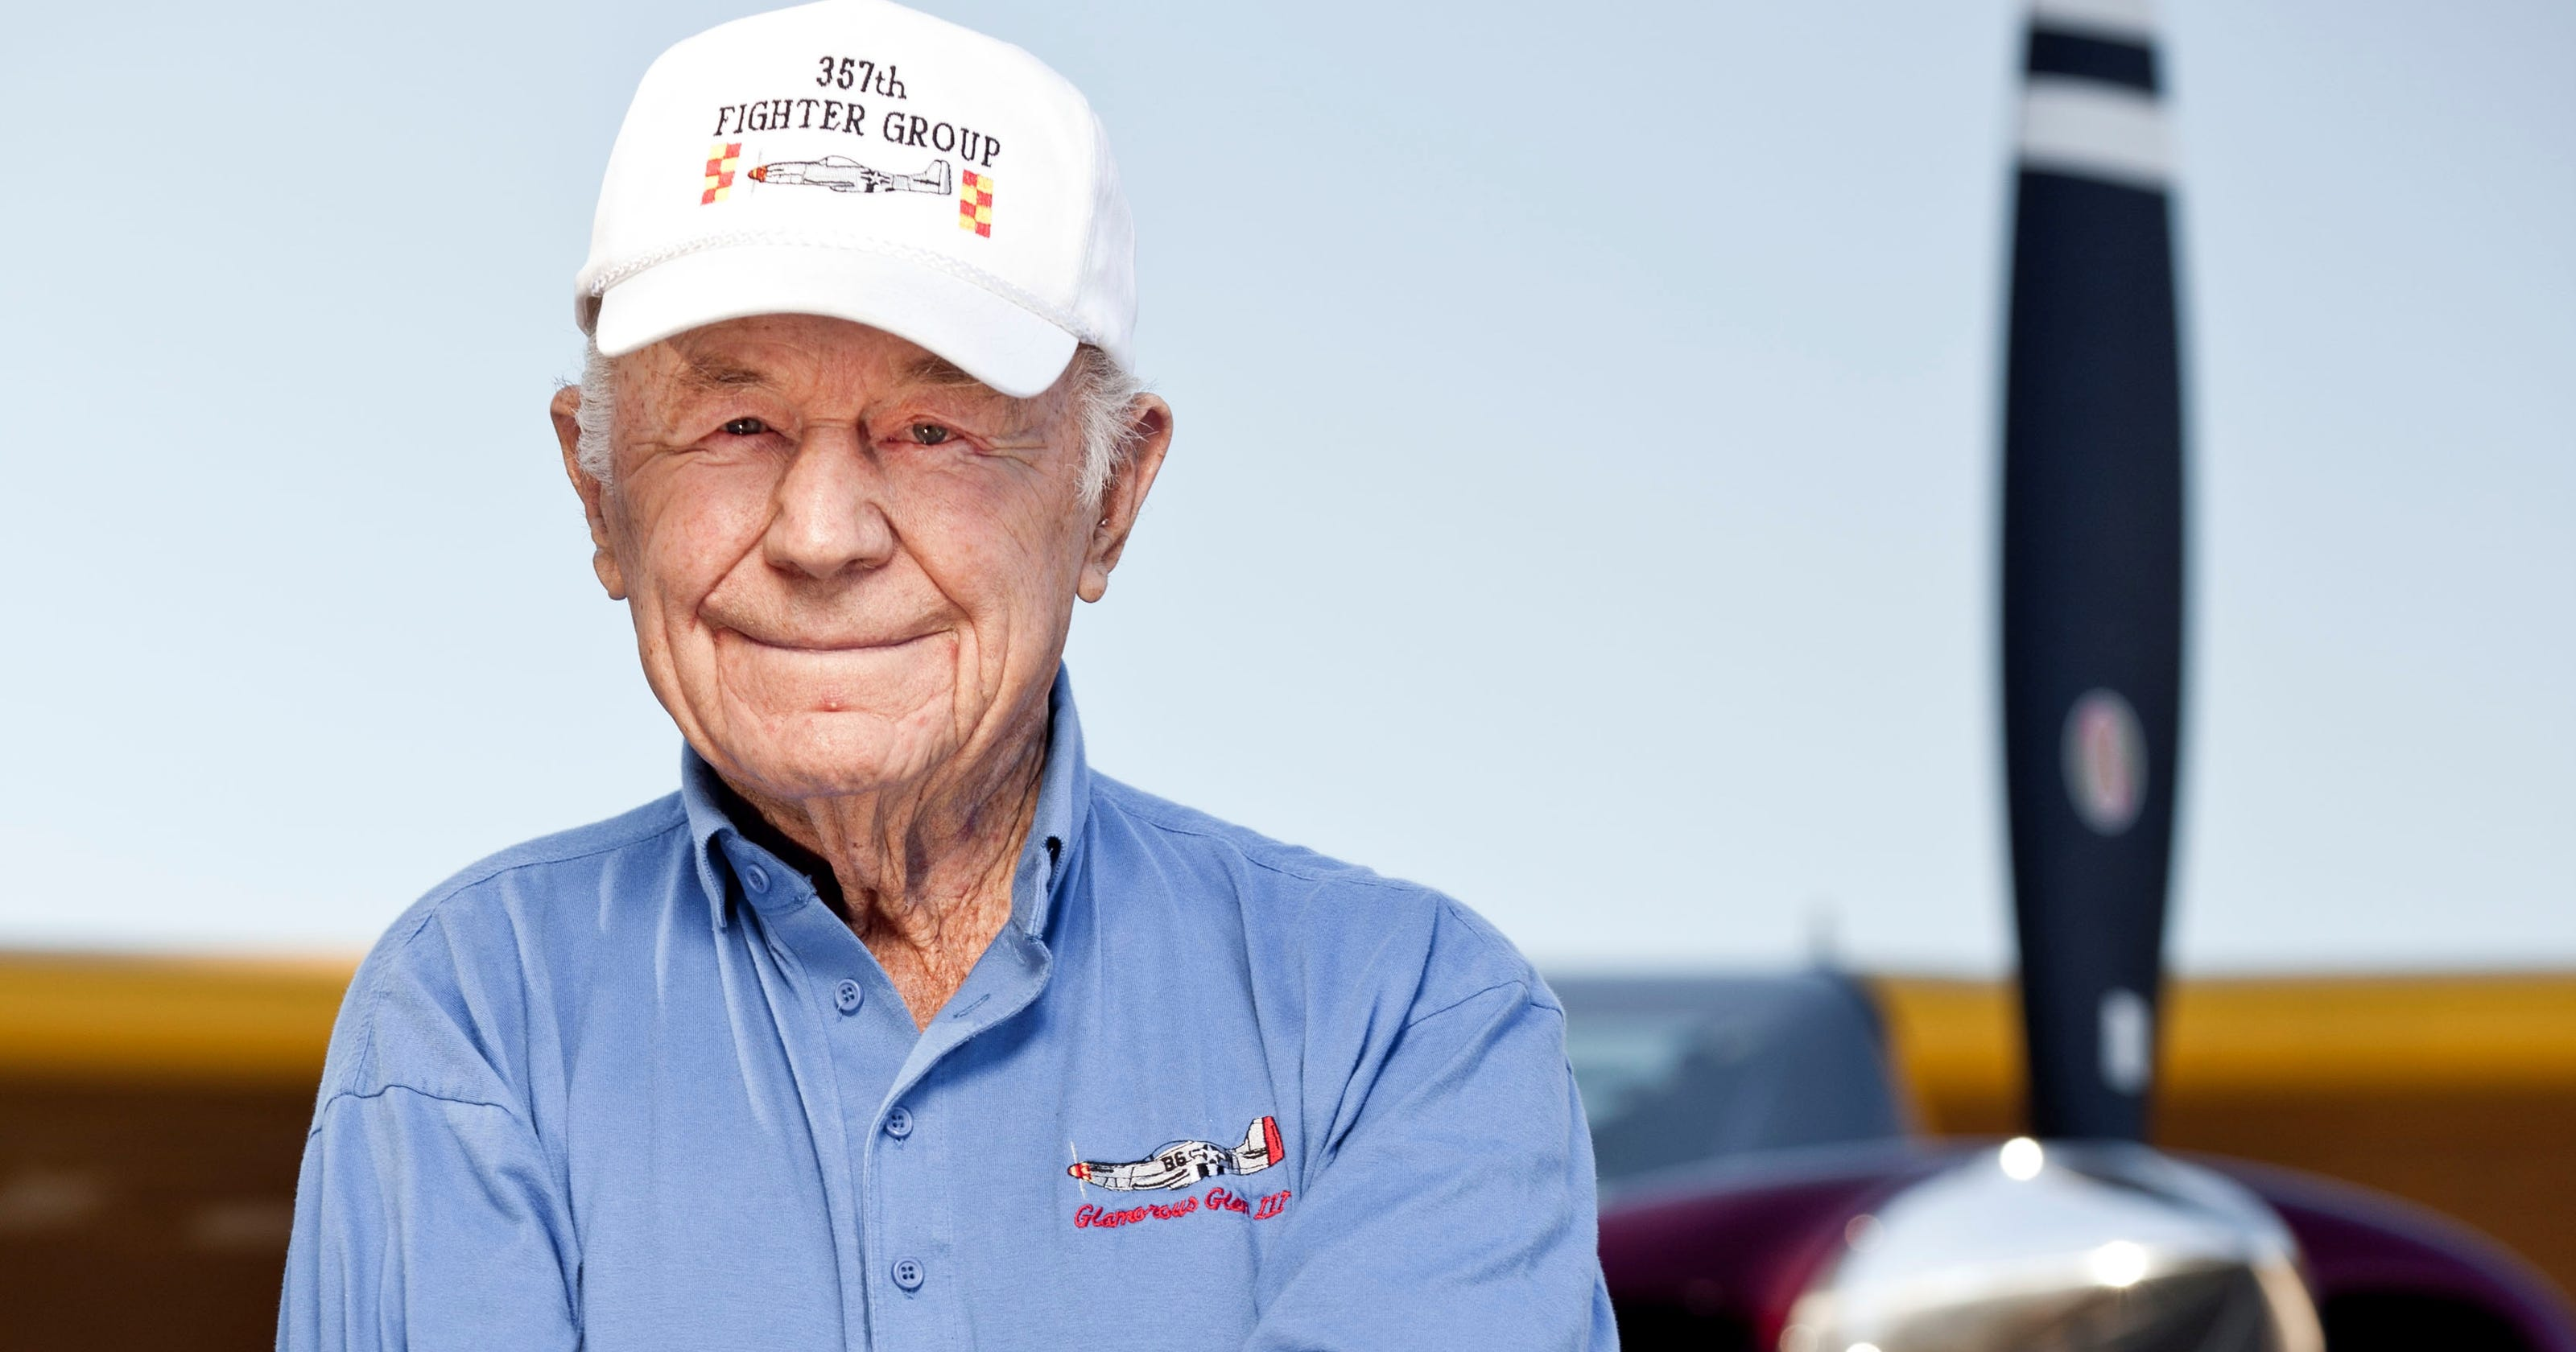 chuck yeager still soaring at 89